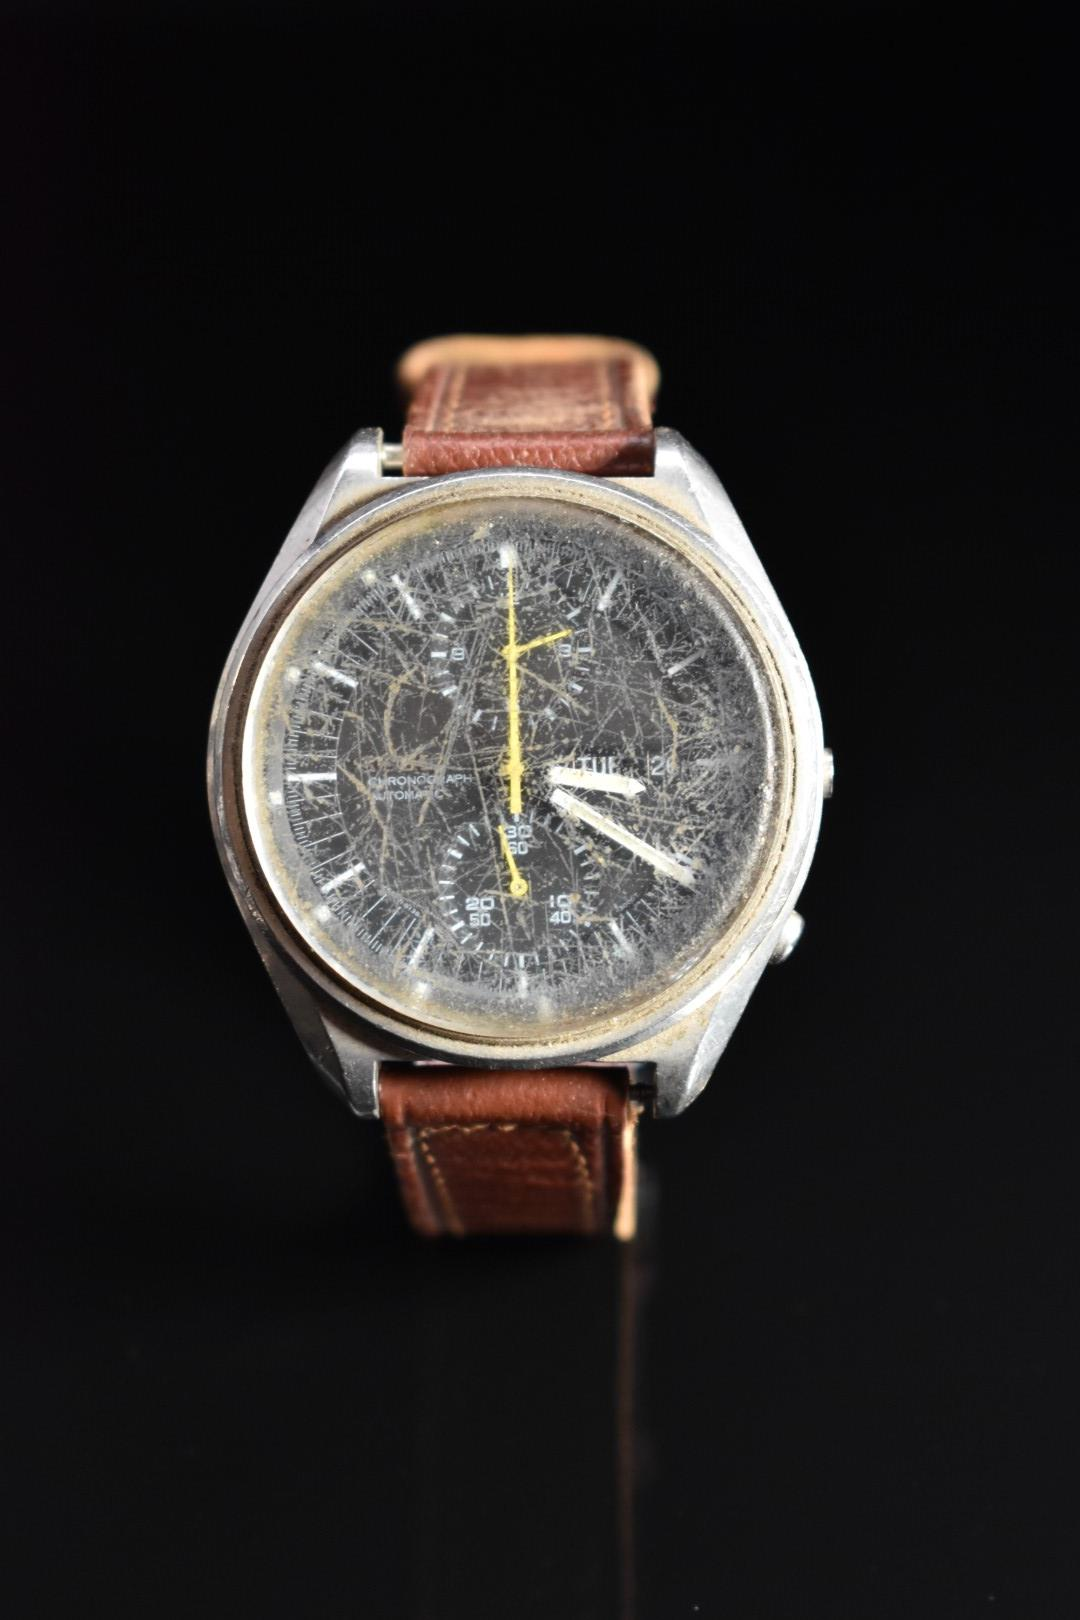 Seiko gentleman's automatic chronograph wristwatch ref. 6138-3002 with day and date apertures,